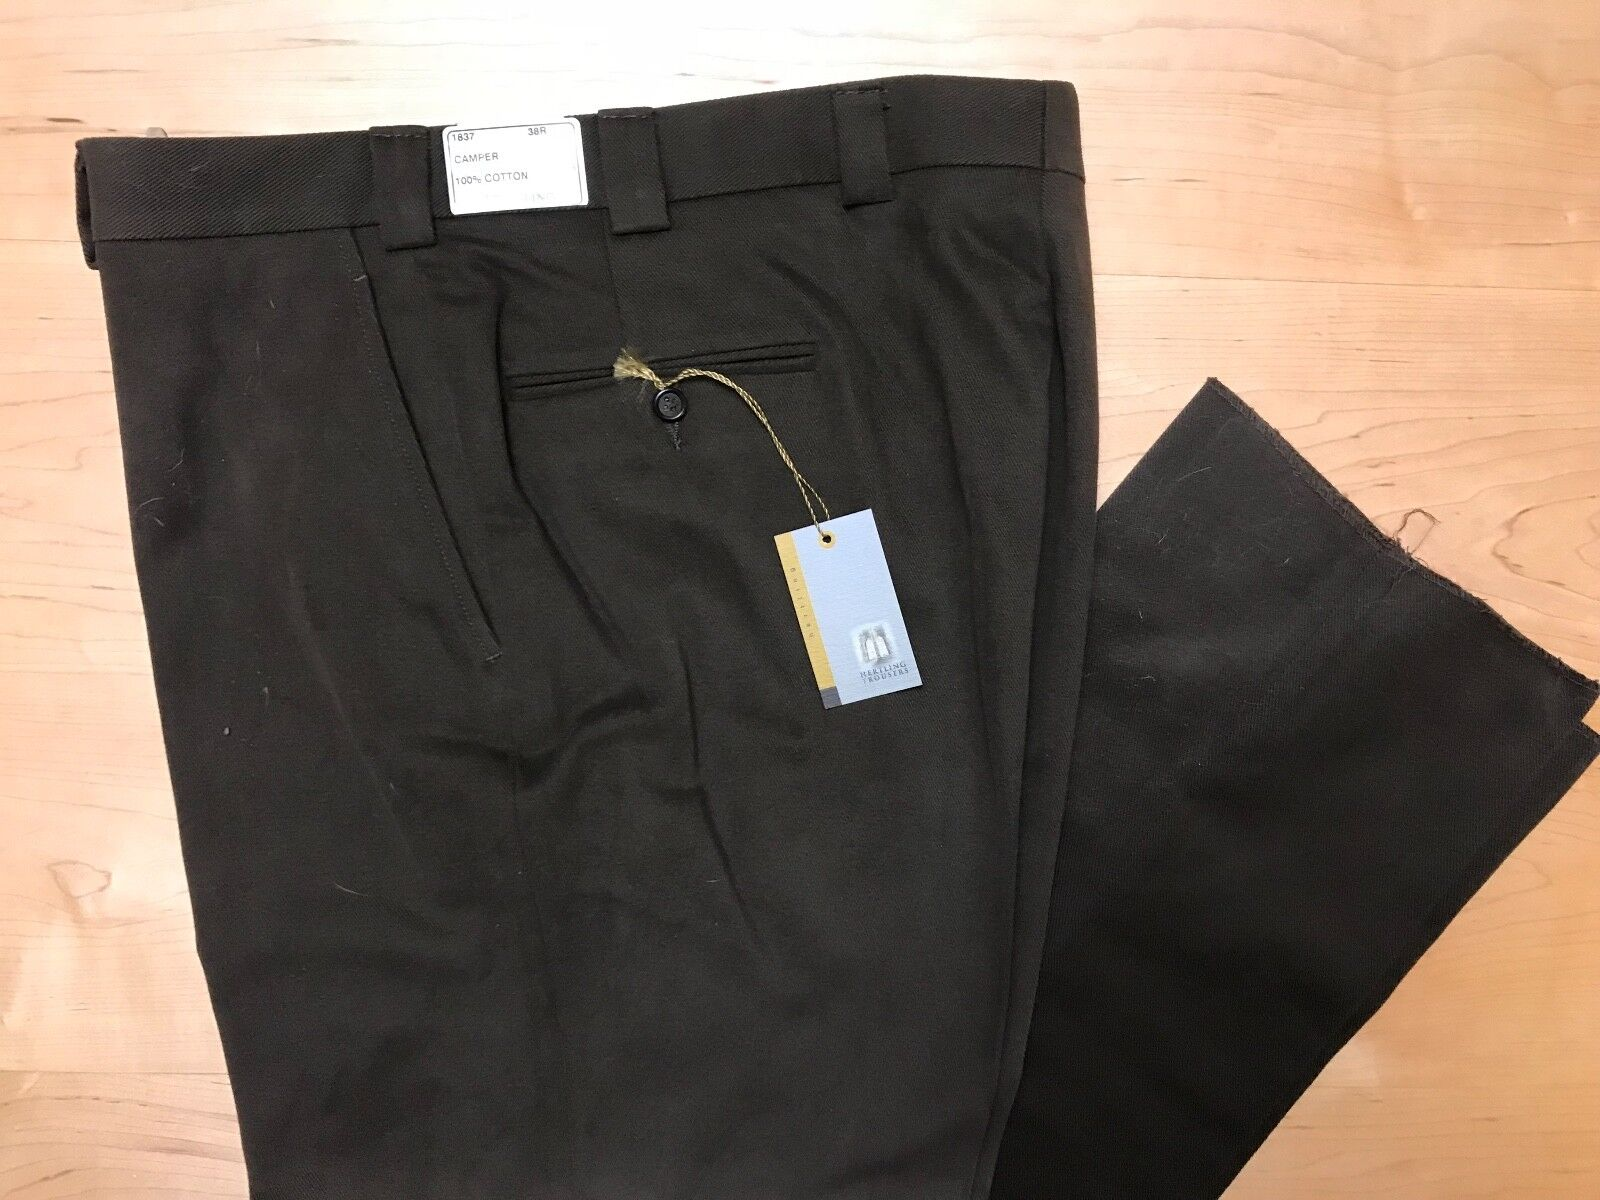 Hertling Trouser. 100% Cotton Twill   Camper fit   Size 38   1837. NEW.